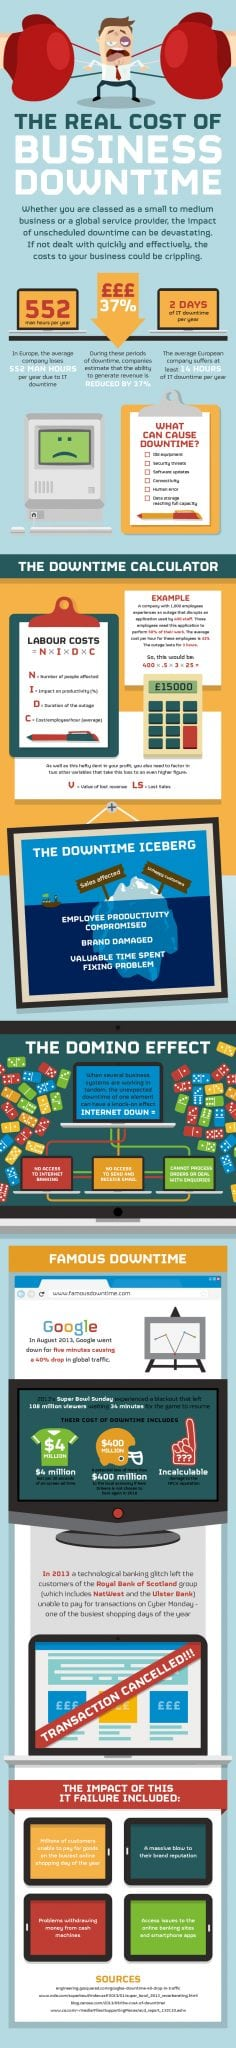 Photo of The Real Cost of Business Downtime [INFOGRAPHIC]